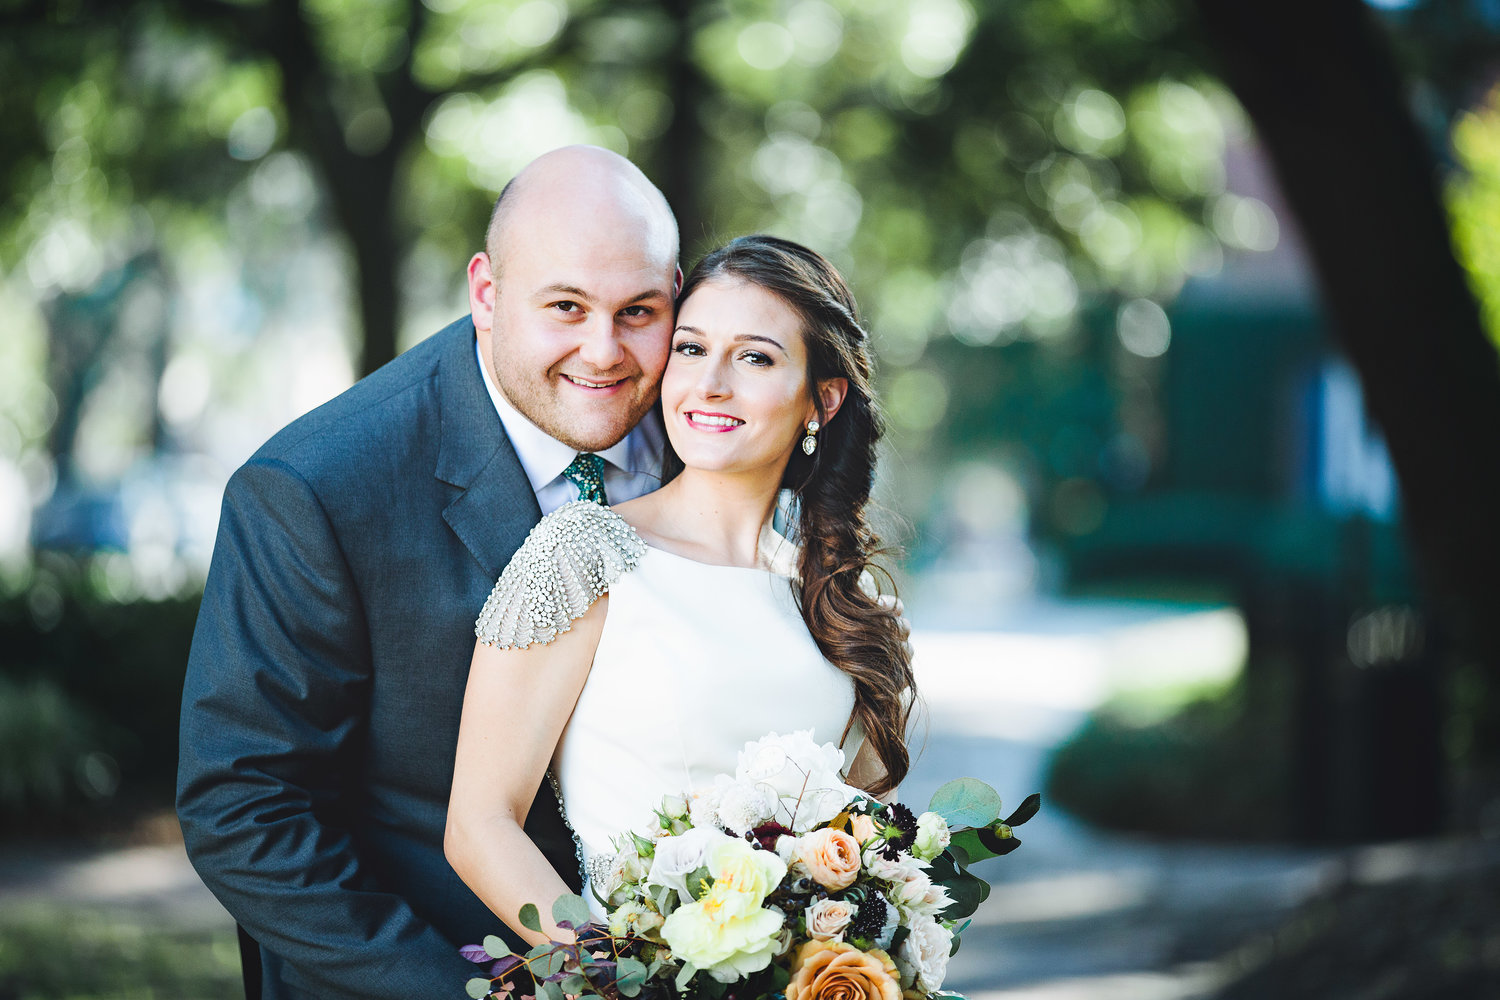 izzy-hudgins-photography-savannah-wedding-ivory-and-beau-bridal-boutique-savannah-wedding-planner-colonial-house-of-flowers-forsyth-park-wedding-old-fort-jackson-wedding-squidwed-films-savannah-boutique-savannah-weddings-19.jpg